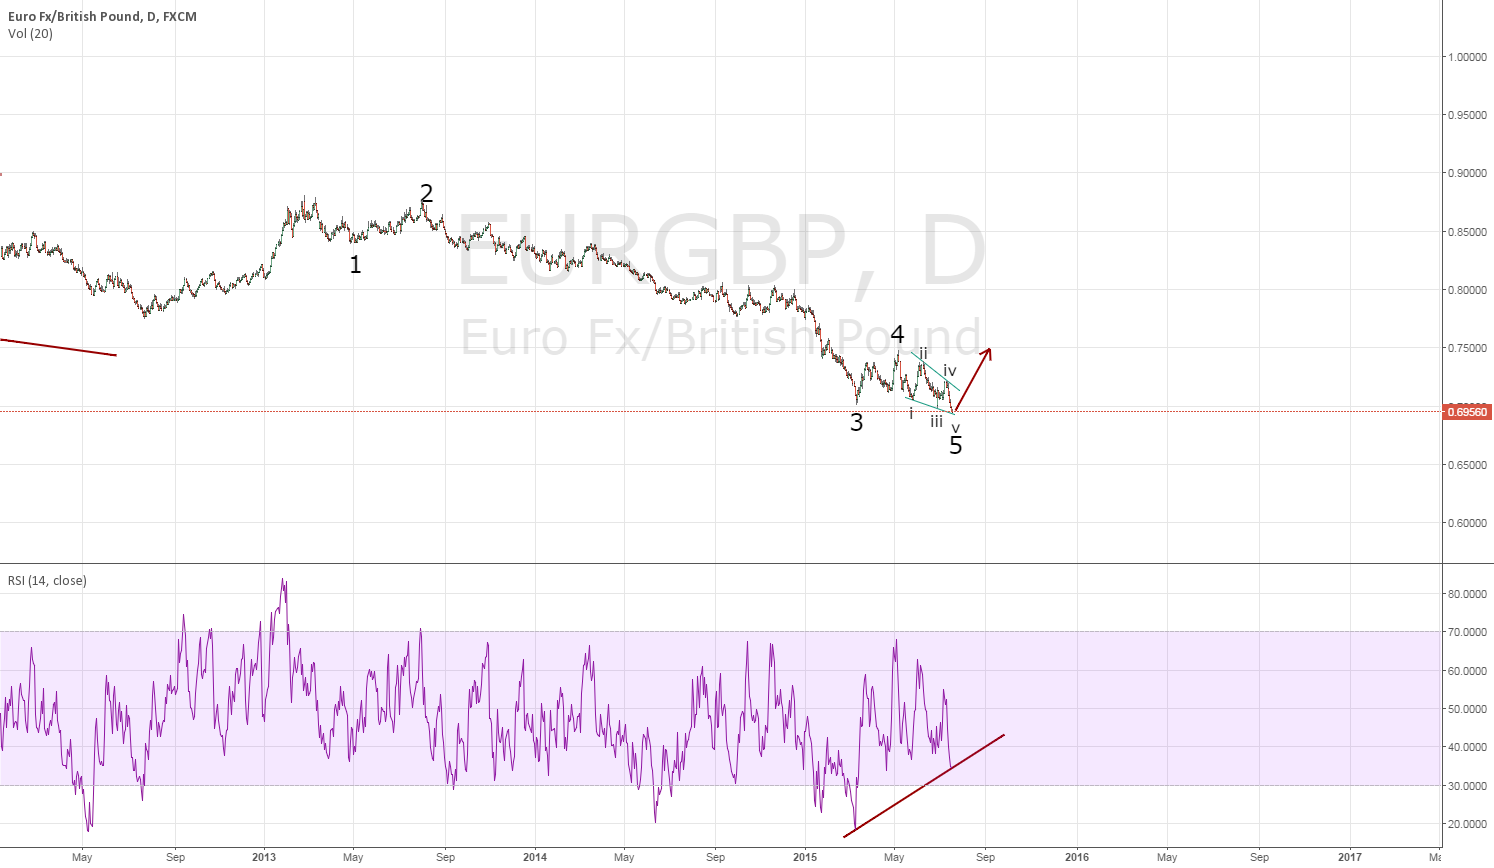 EURGBP - could have been bottomed (or bottoming).